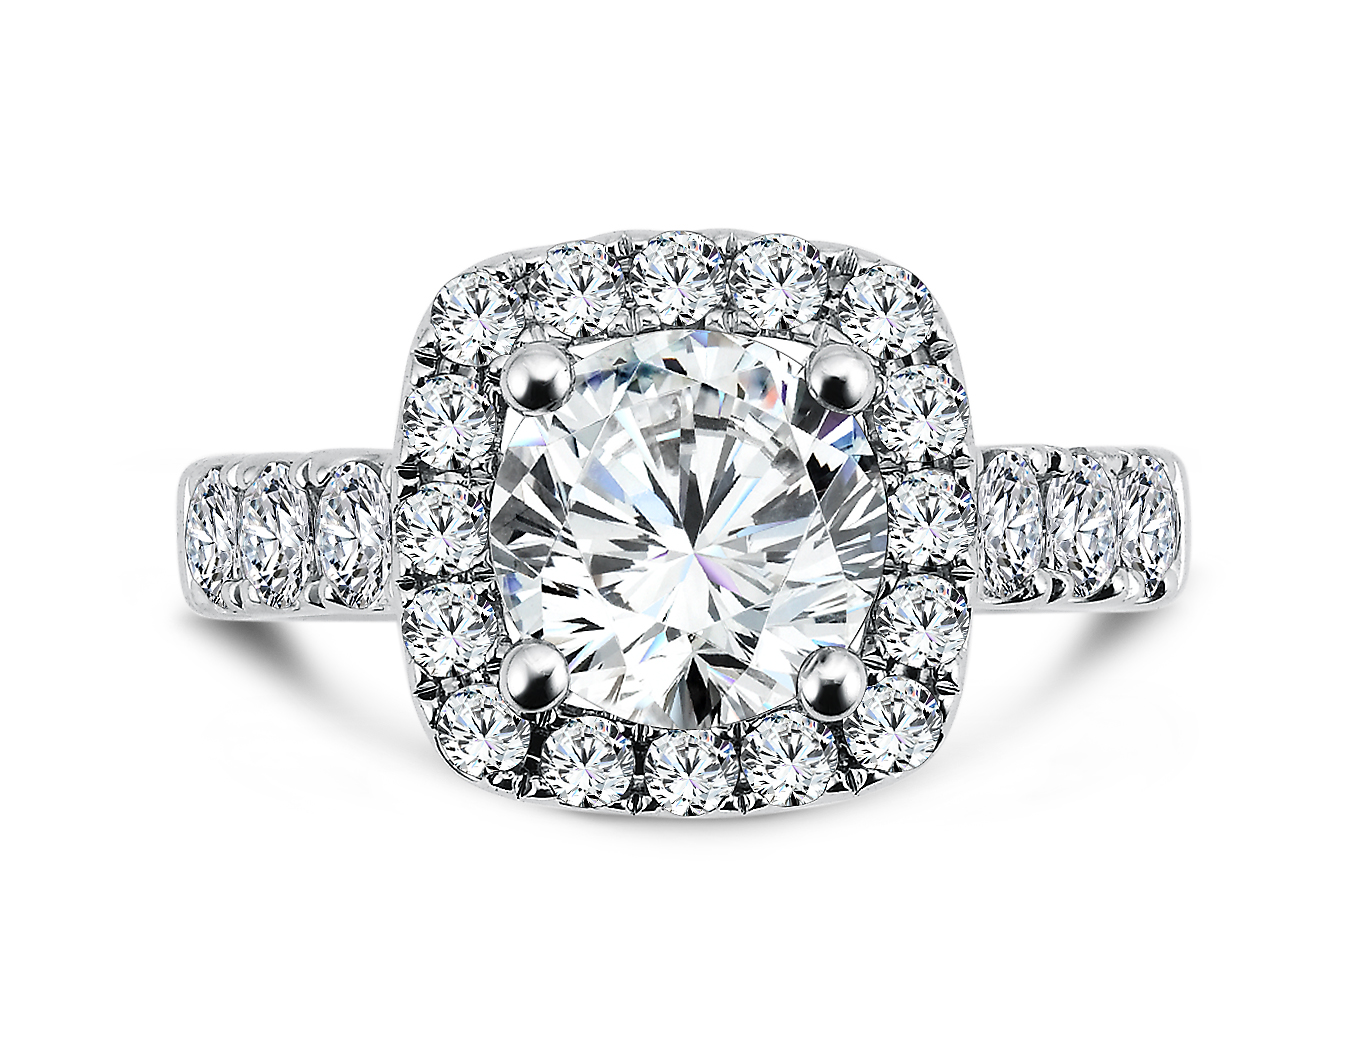 Custom Halo Diamond Ring Dallas, Shira Diamonds